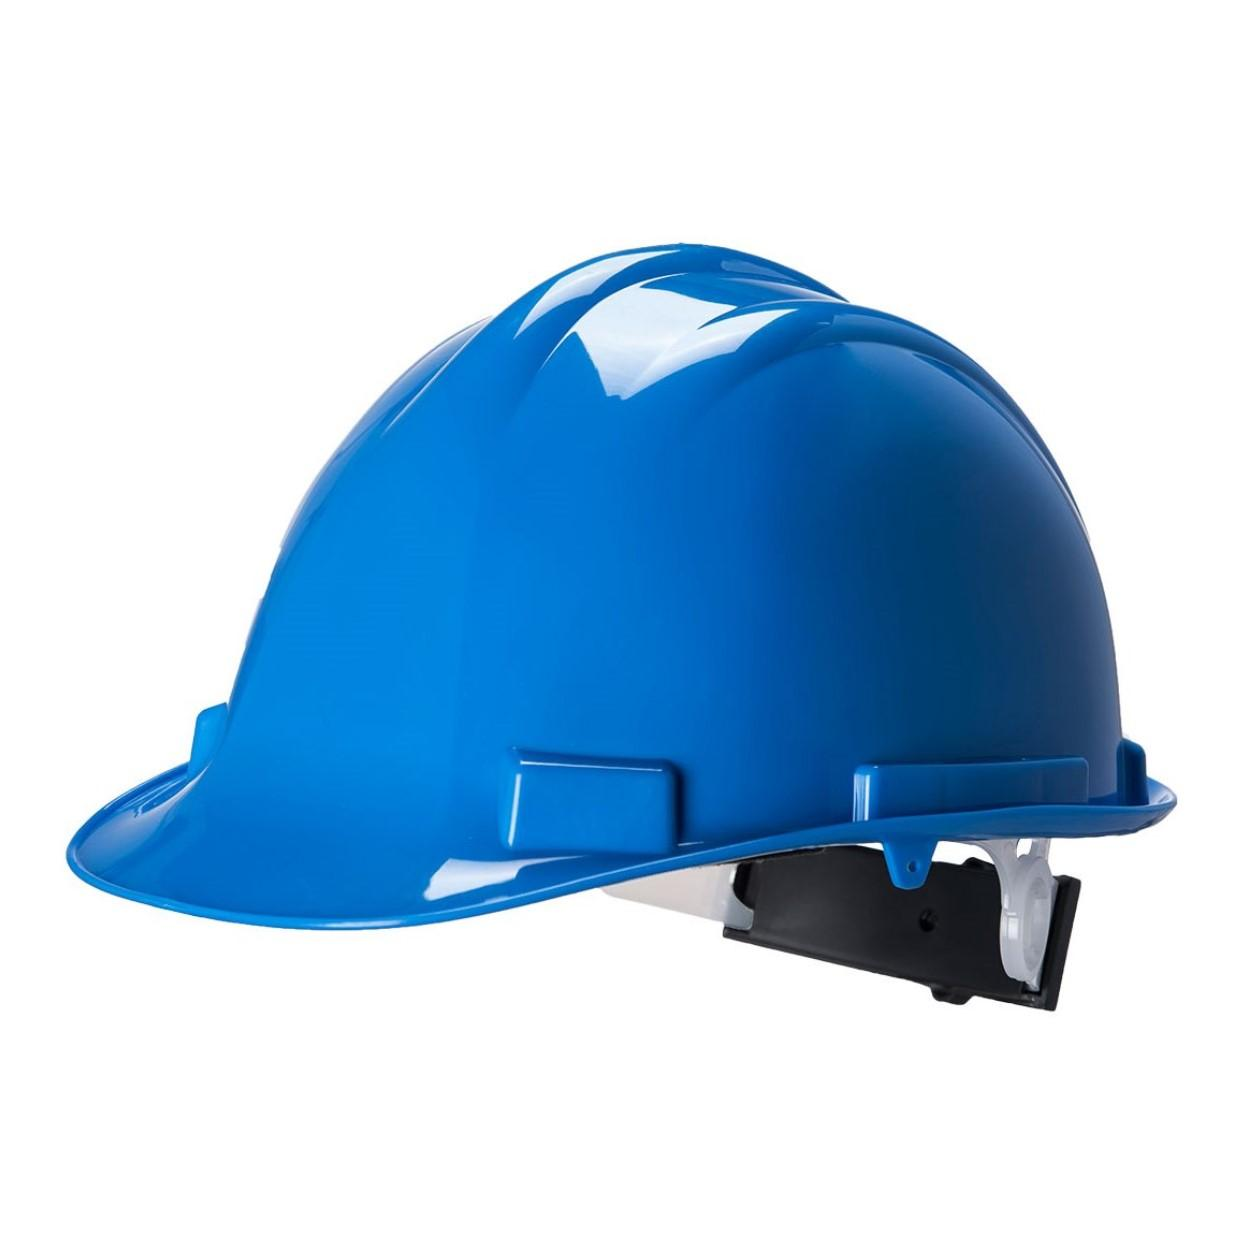 Casque de securite expertbase portwest ps57 2003